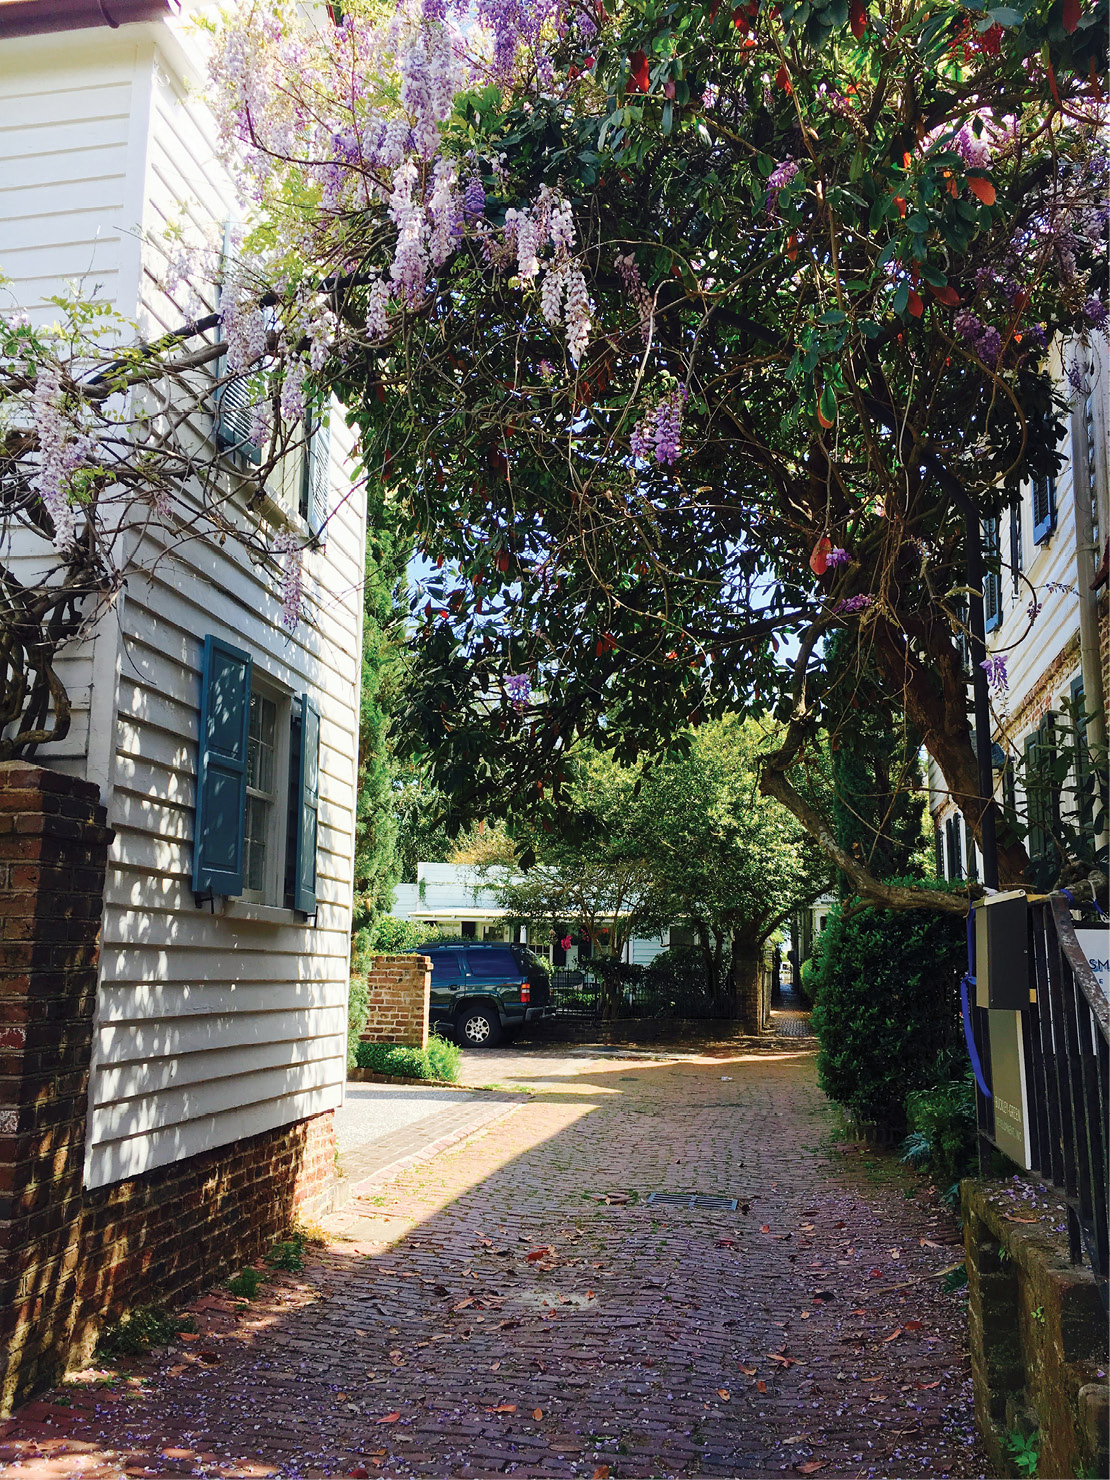 5. Stoll's Alley